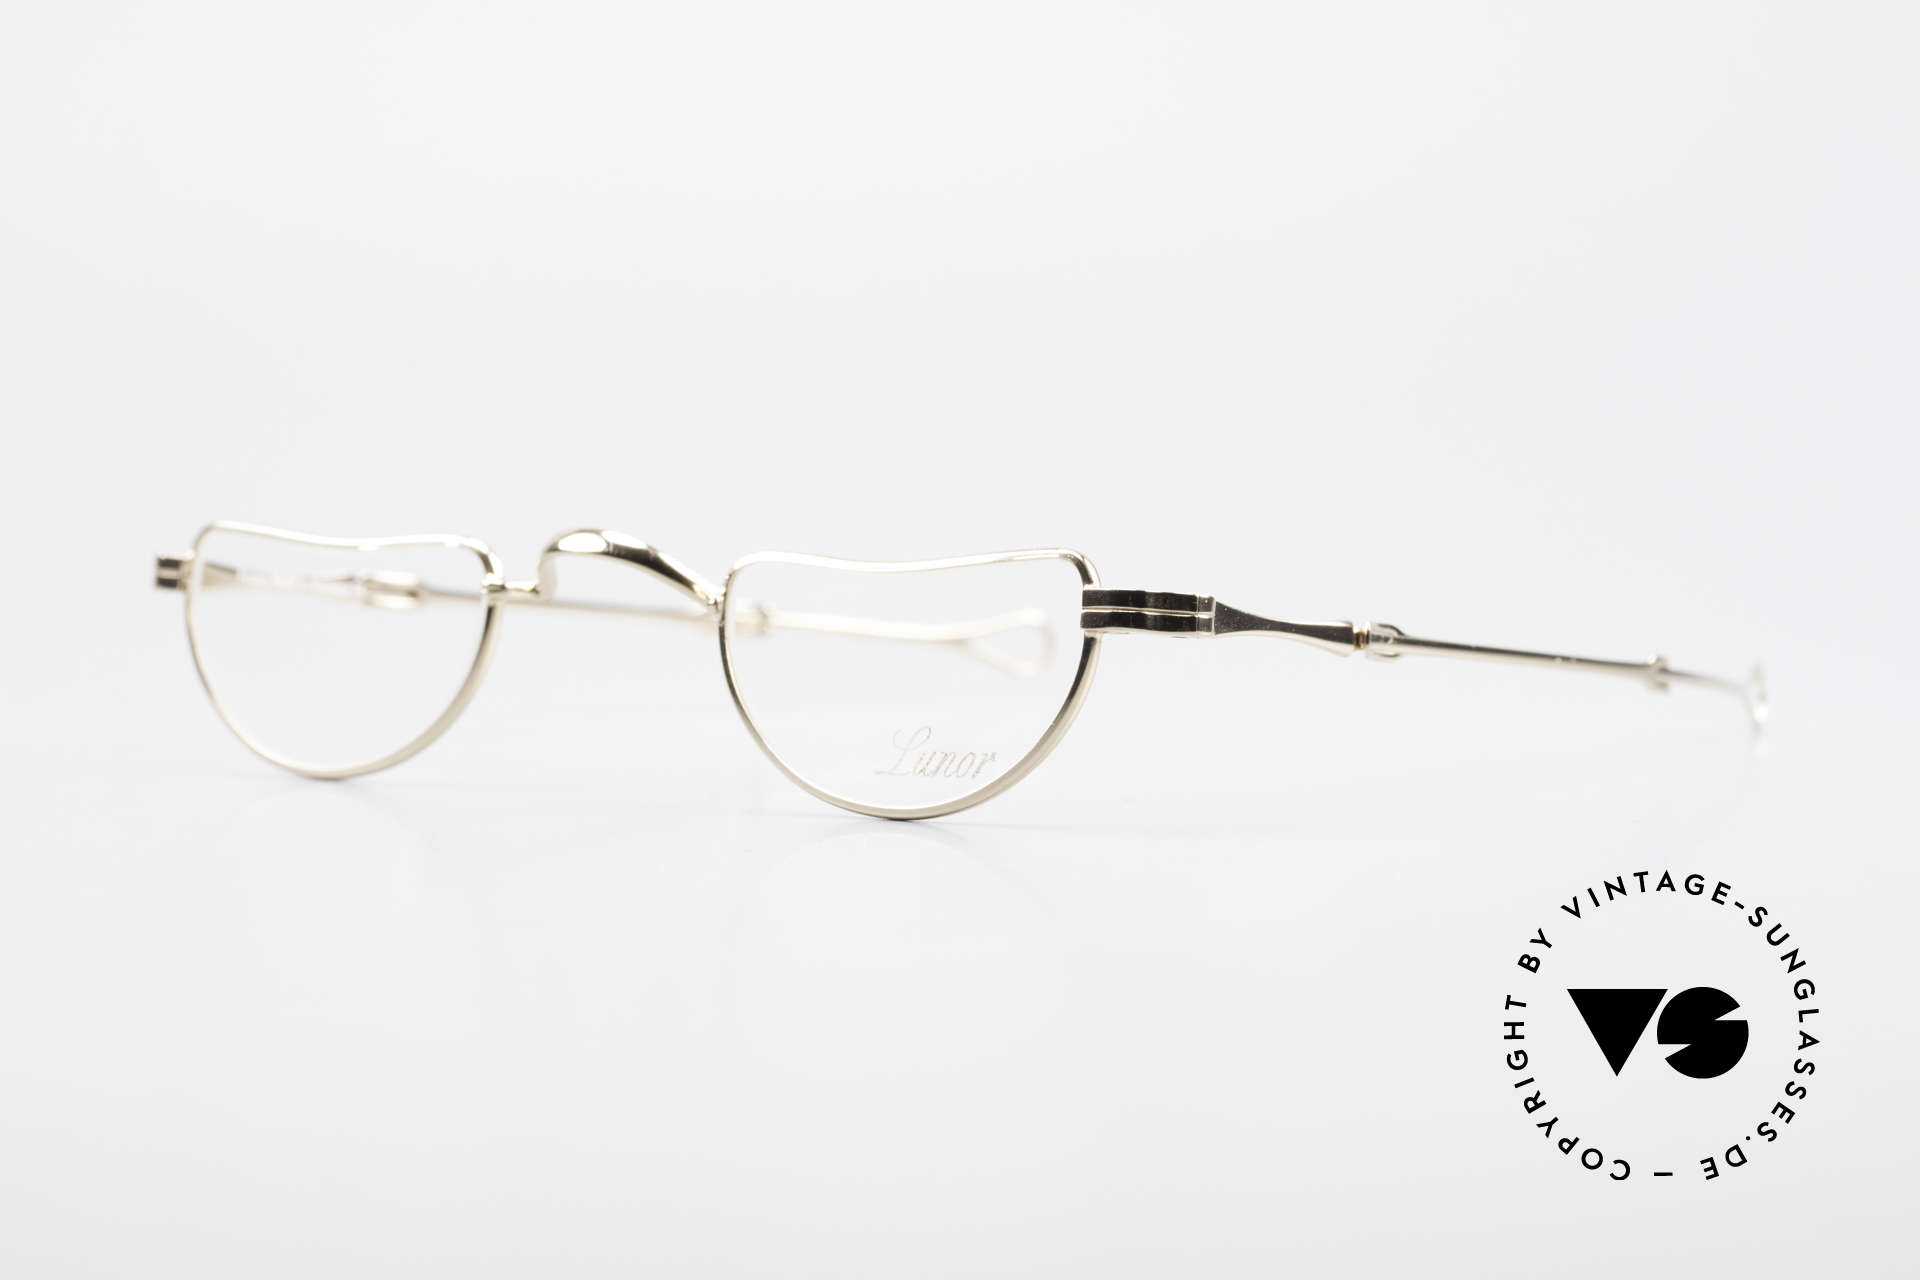 """Lunor I 07 Telescopic Extendable Gold Plated Glasses, well-known for the """"W-bridge"""" & the plain frame designs, Made for Men and Women"""